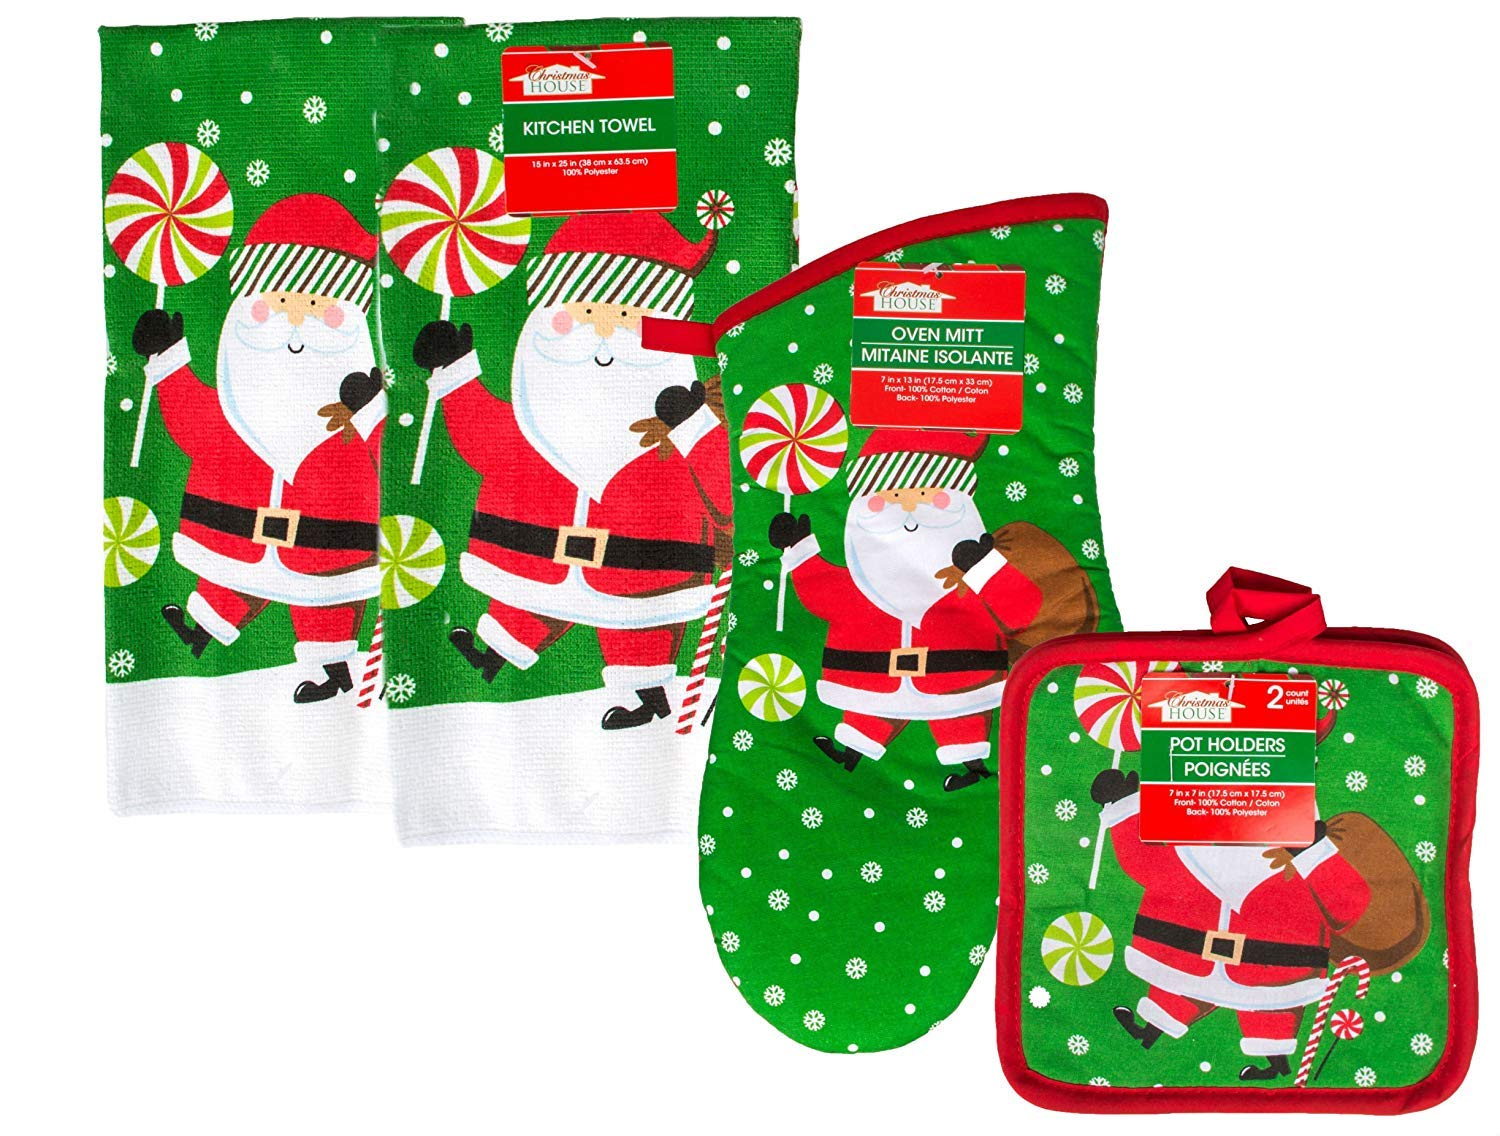 Christmas House Santa Kitchen Towels, Oven Mitt And Pot Holders - 5 Piece Set Greenbrier Interntional